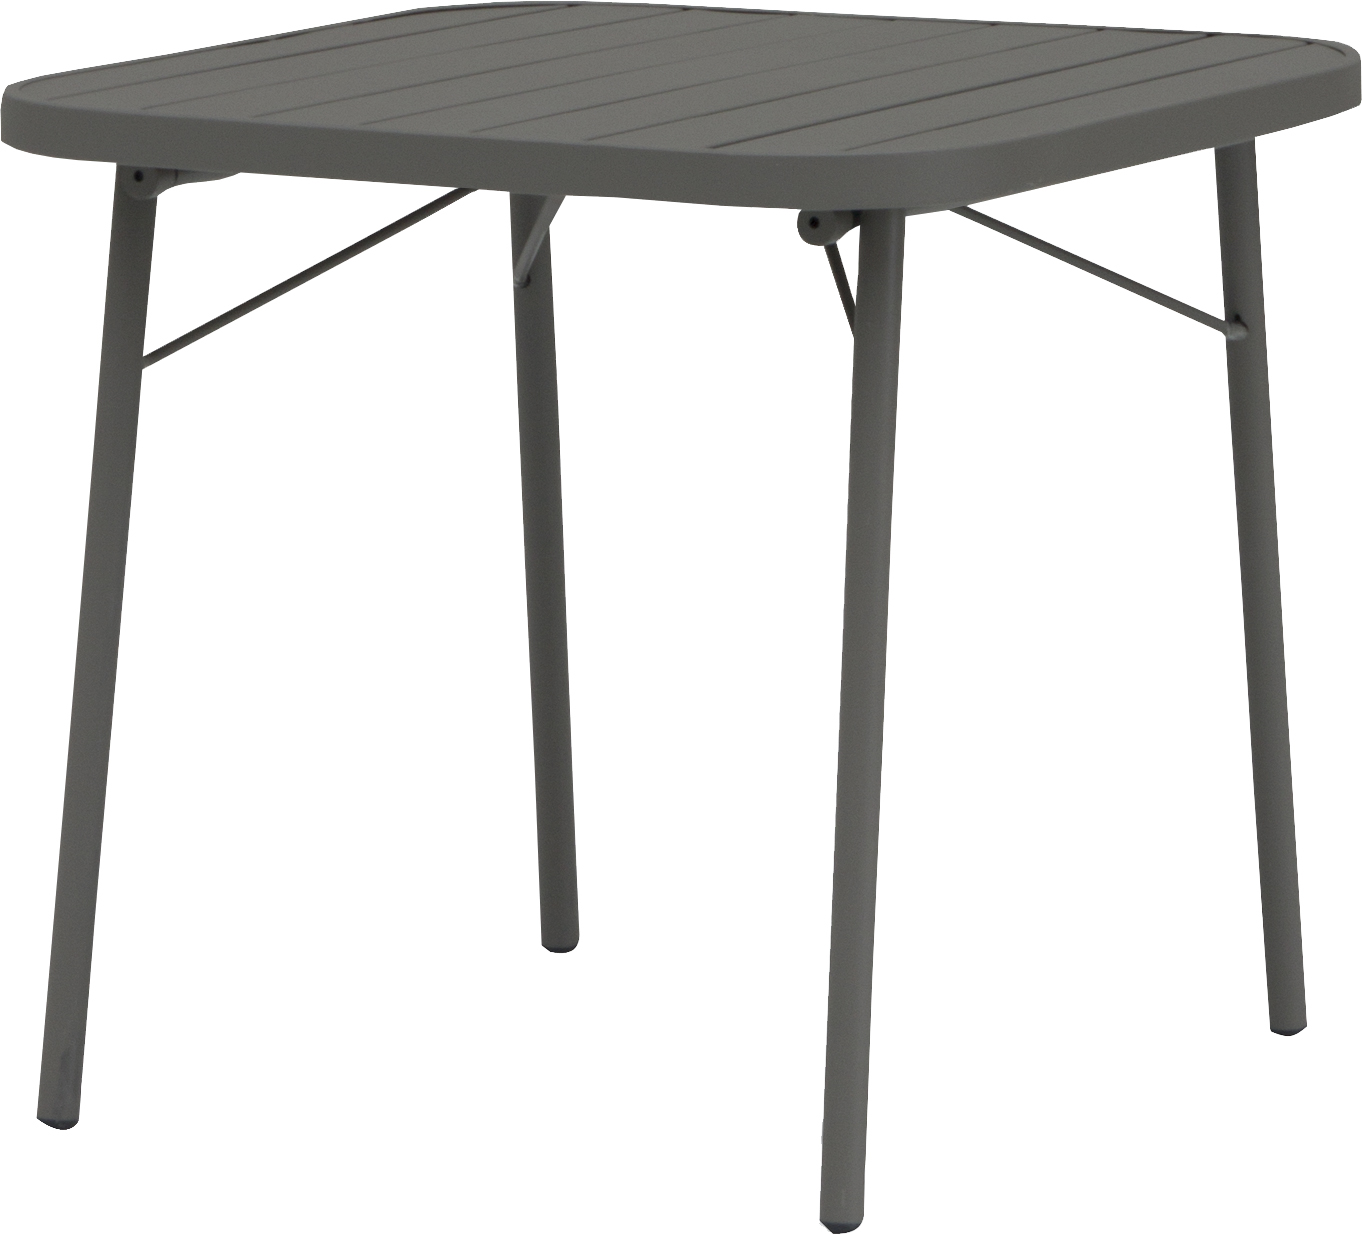 Table ronde fer forge pas chere sammlung for Table ronde fer forge